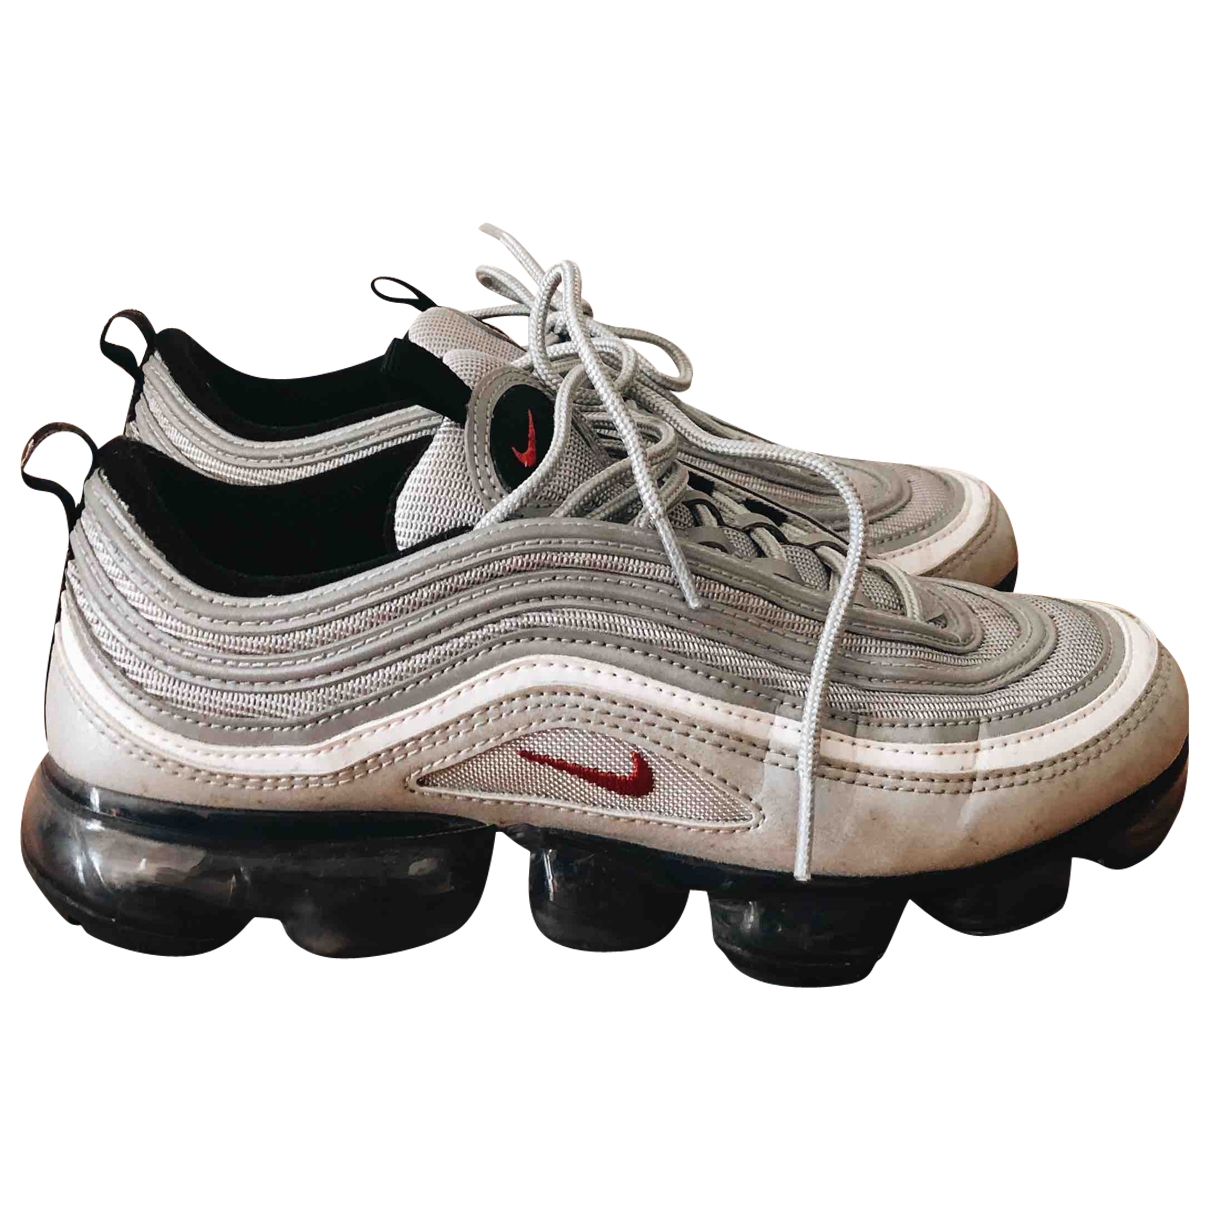 Nike Air Max 97 Silver Leather Trainers for Women 7 US